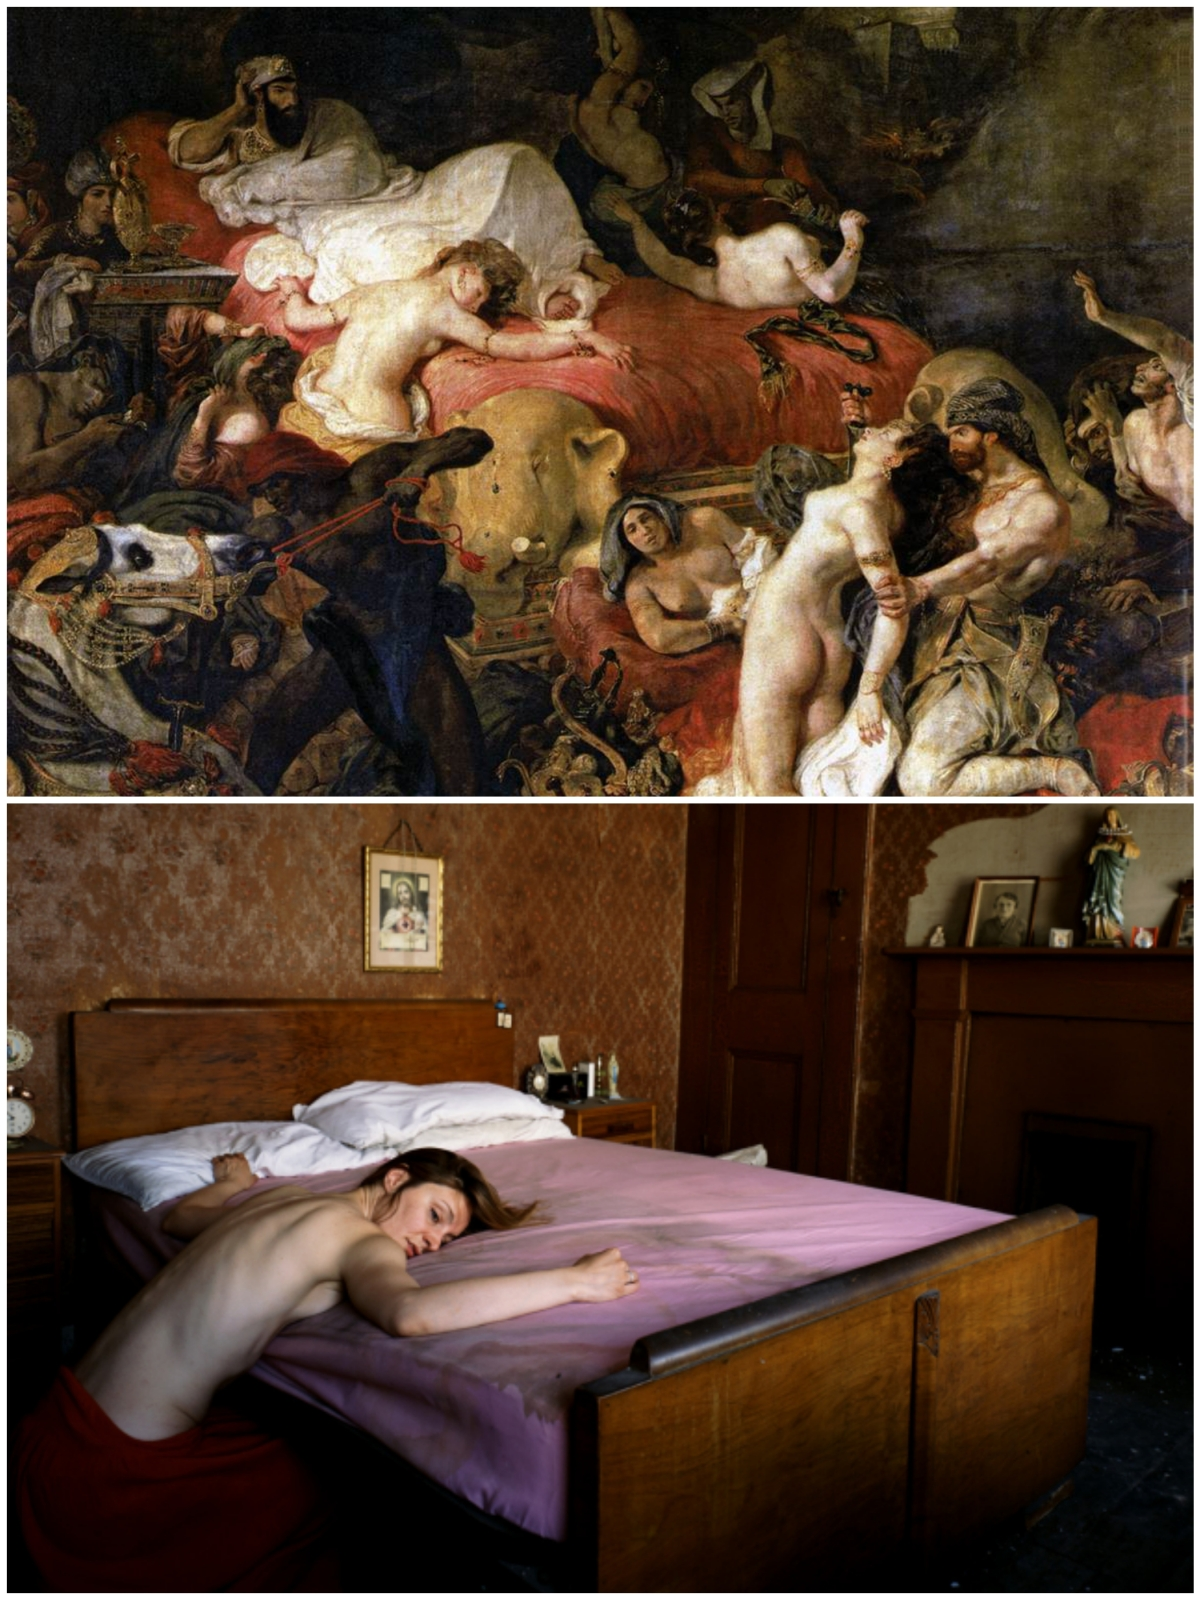 https://parodiesandvariations.files.wordpress.com/2015/12/delacroix-the-death-of-sardanapalus-1827-hunter-death-of-coltelli-2009_collage.jpg